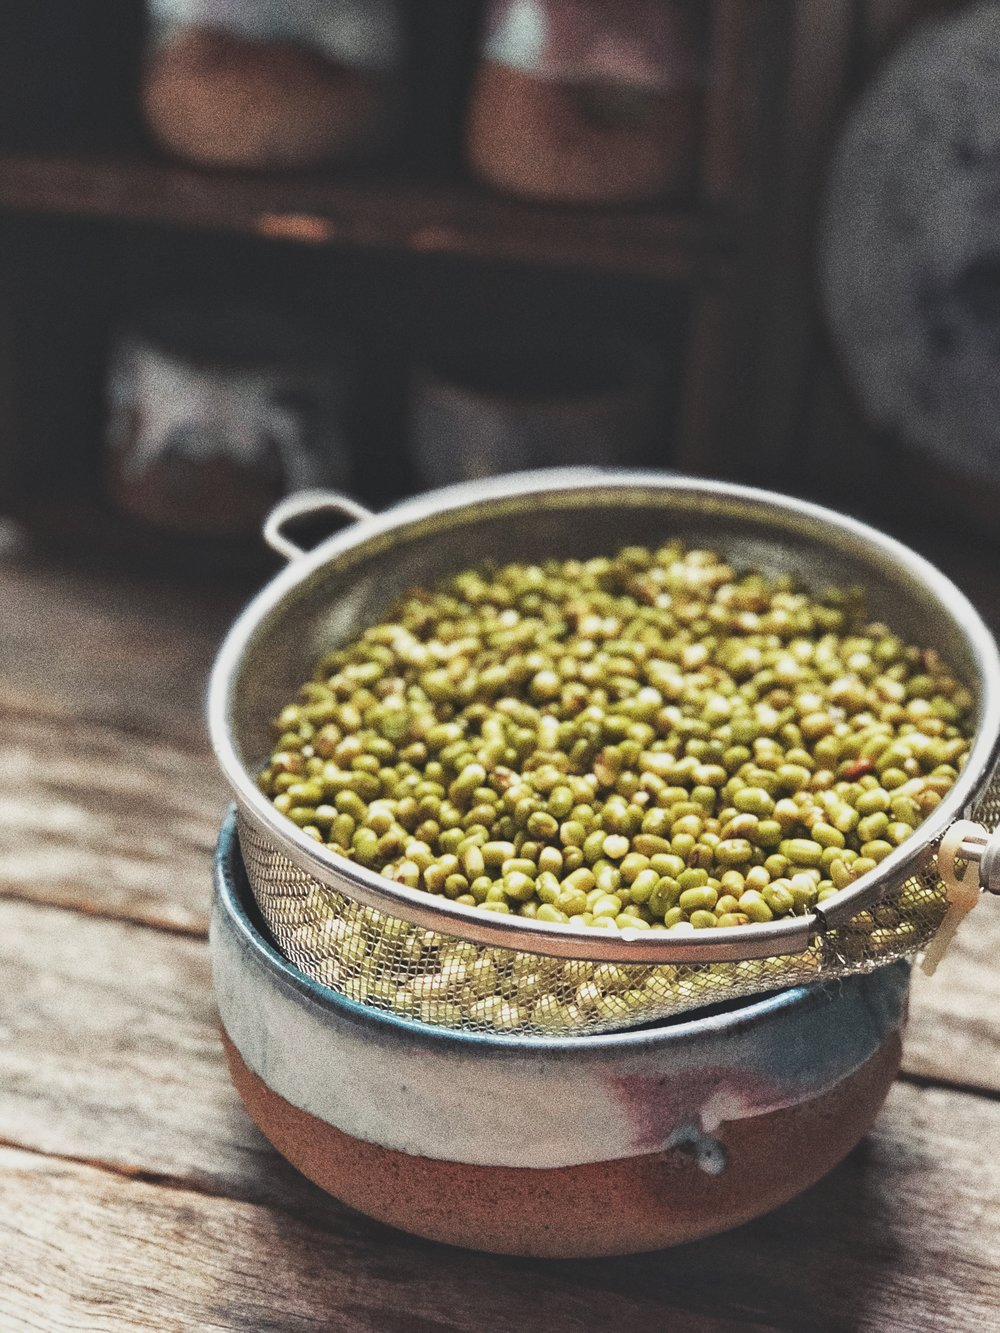 beans after draining & rinsing, to be covered with a tea towel to start the sprouting process